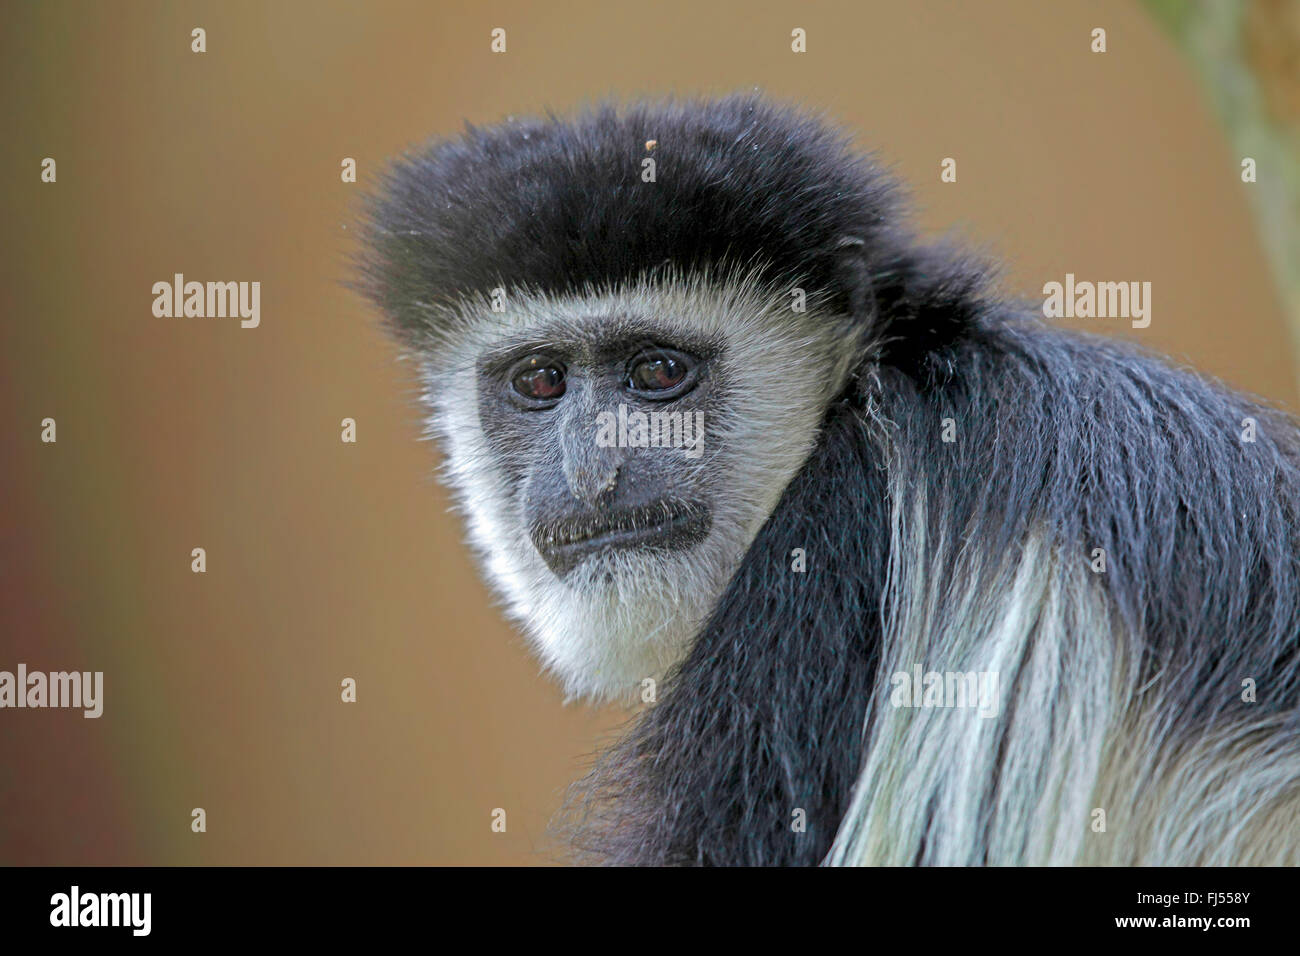 guereza, guereza colobus, eastern black-and-white colobus, mantled colobus, mantled guereza (Colobus guereza, Colobus - Stock Image